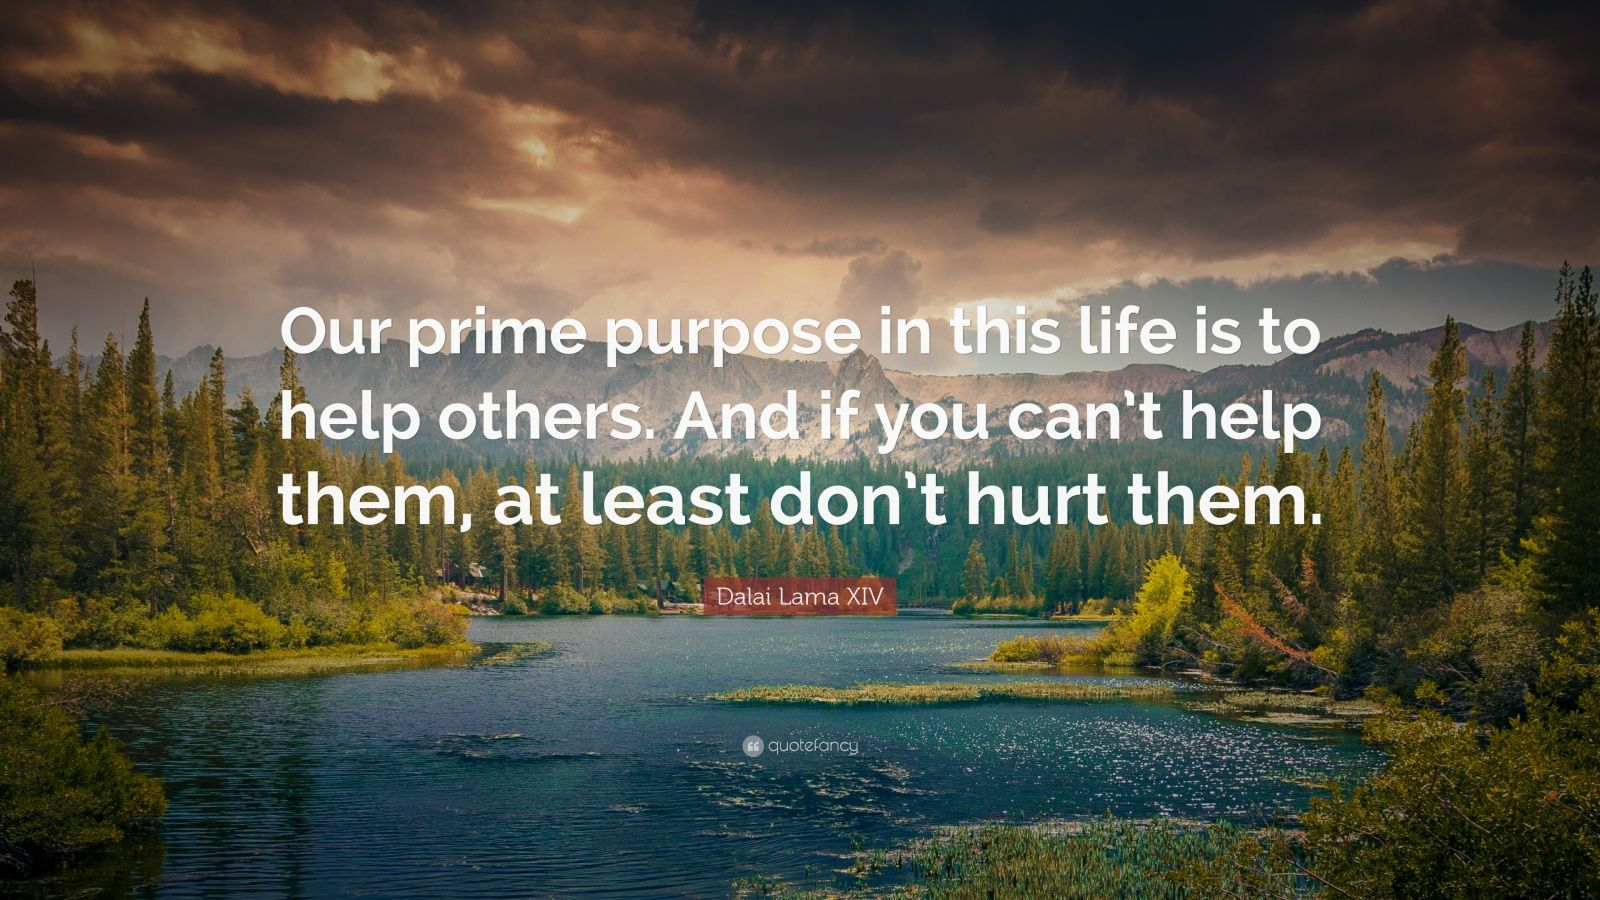 Socrates Wallpaper Quotes Dalai Lama Xiv Quote Our Prime Purpose In This Life Is